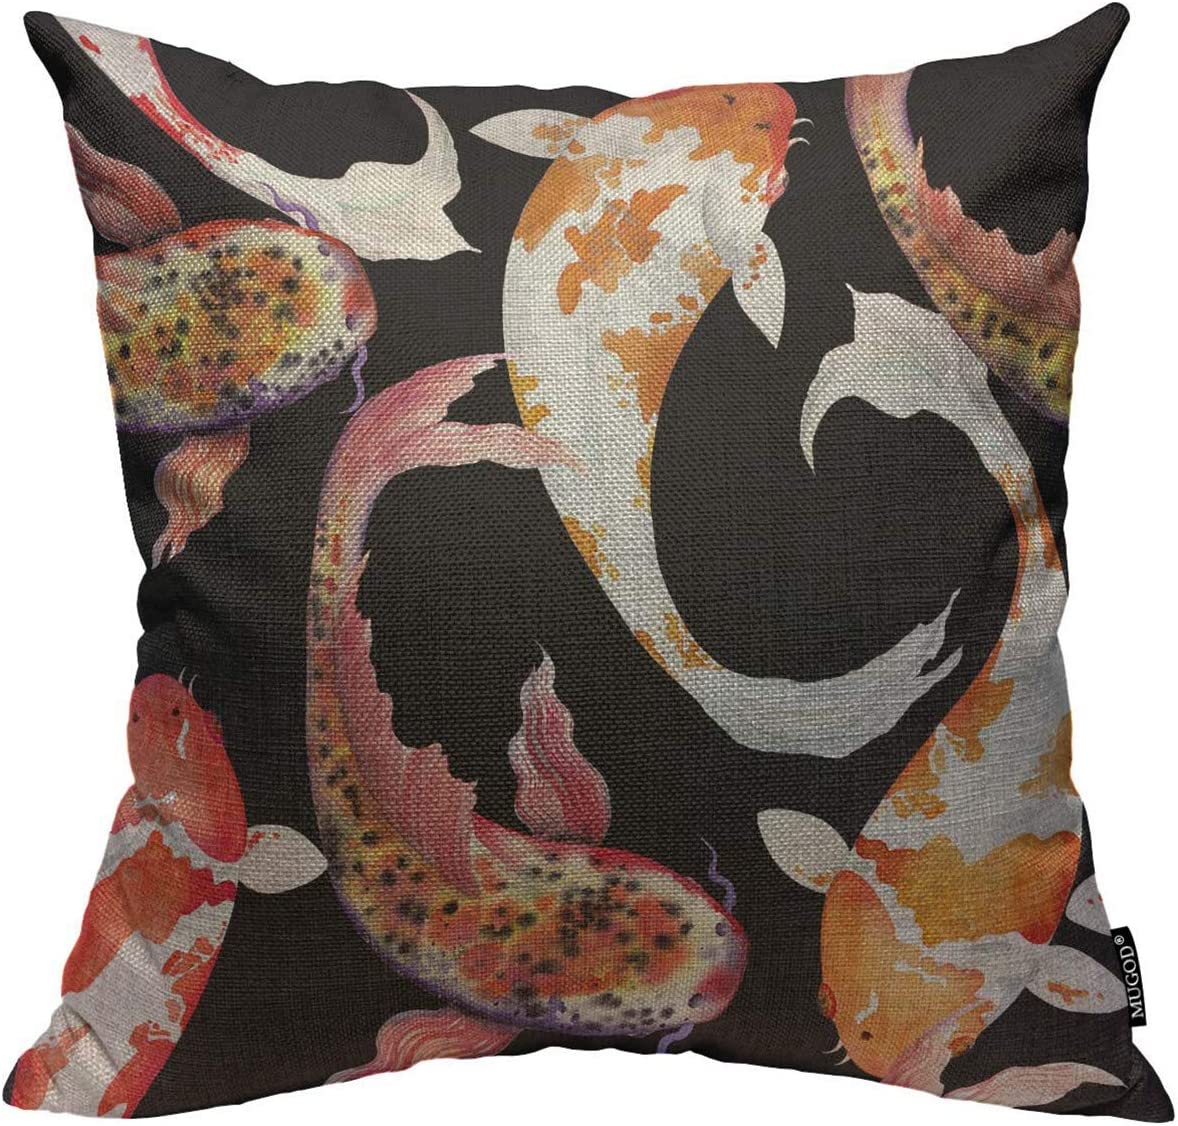 Mugod Throw Pillow Cover Watercolor Japanese Fish Carp Koi Seamless Pattern Swimming Decorative Square Pillow Case for Home Bedroom Living Room Cushion Cover 18x18 Inch